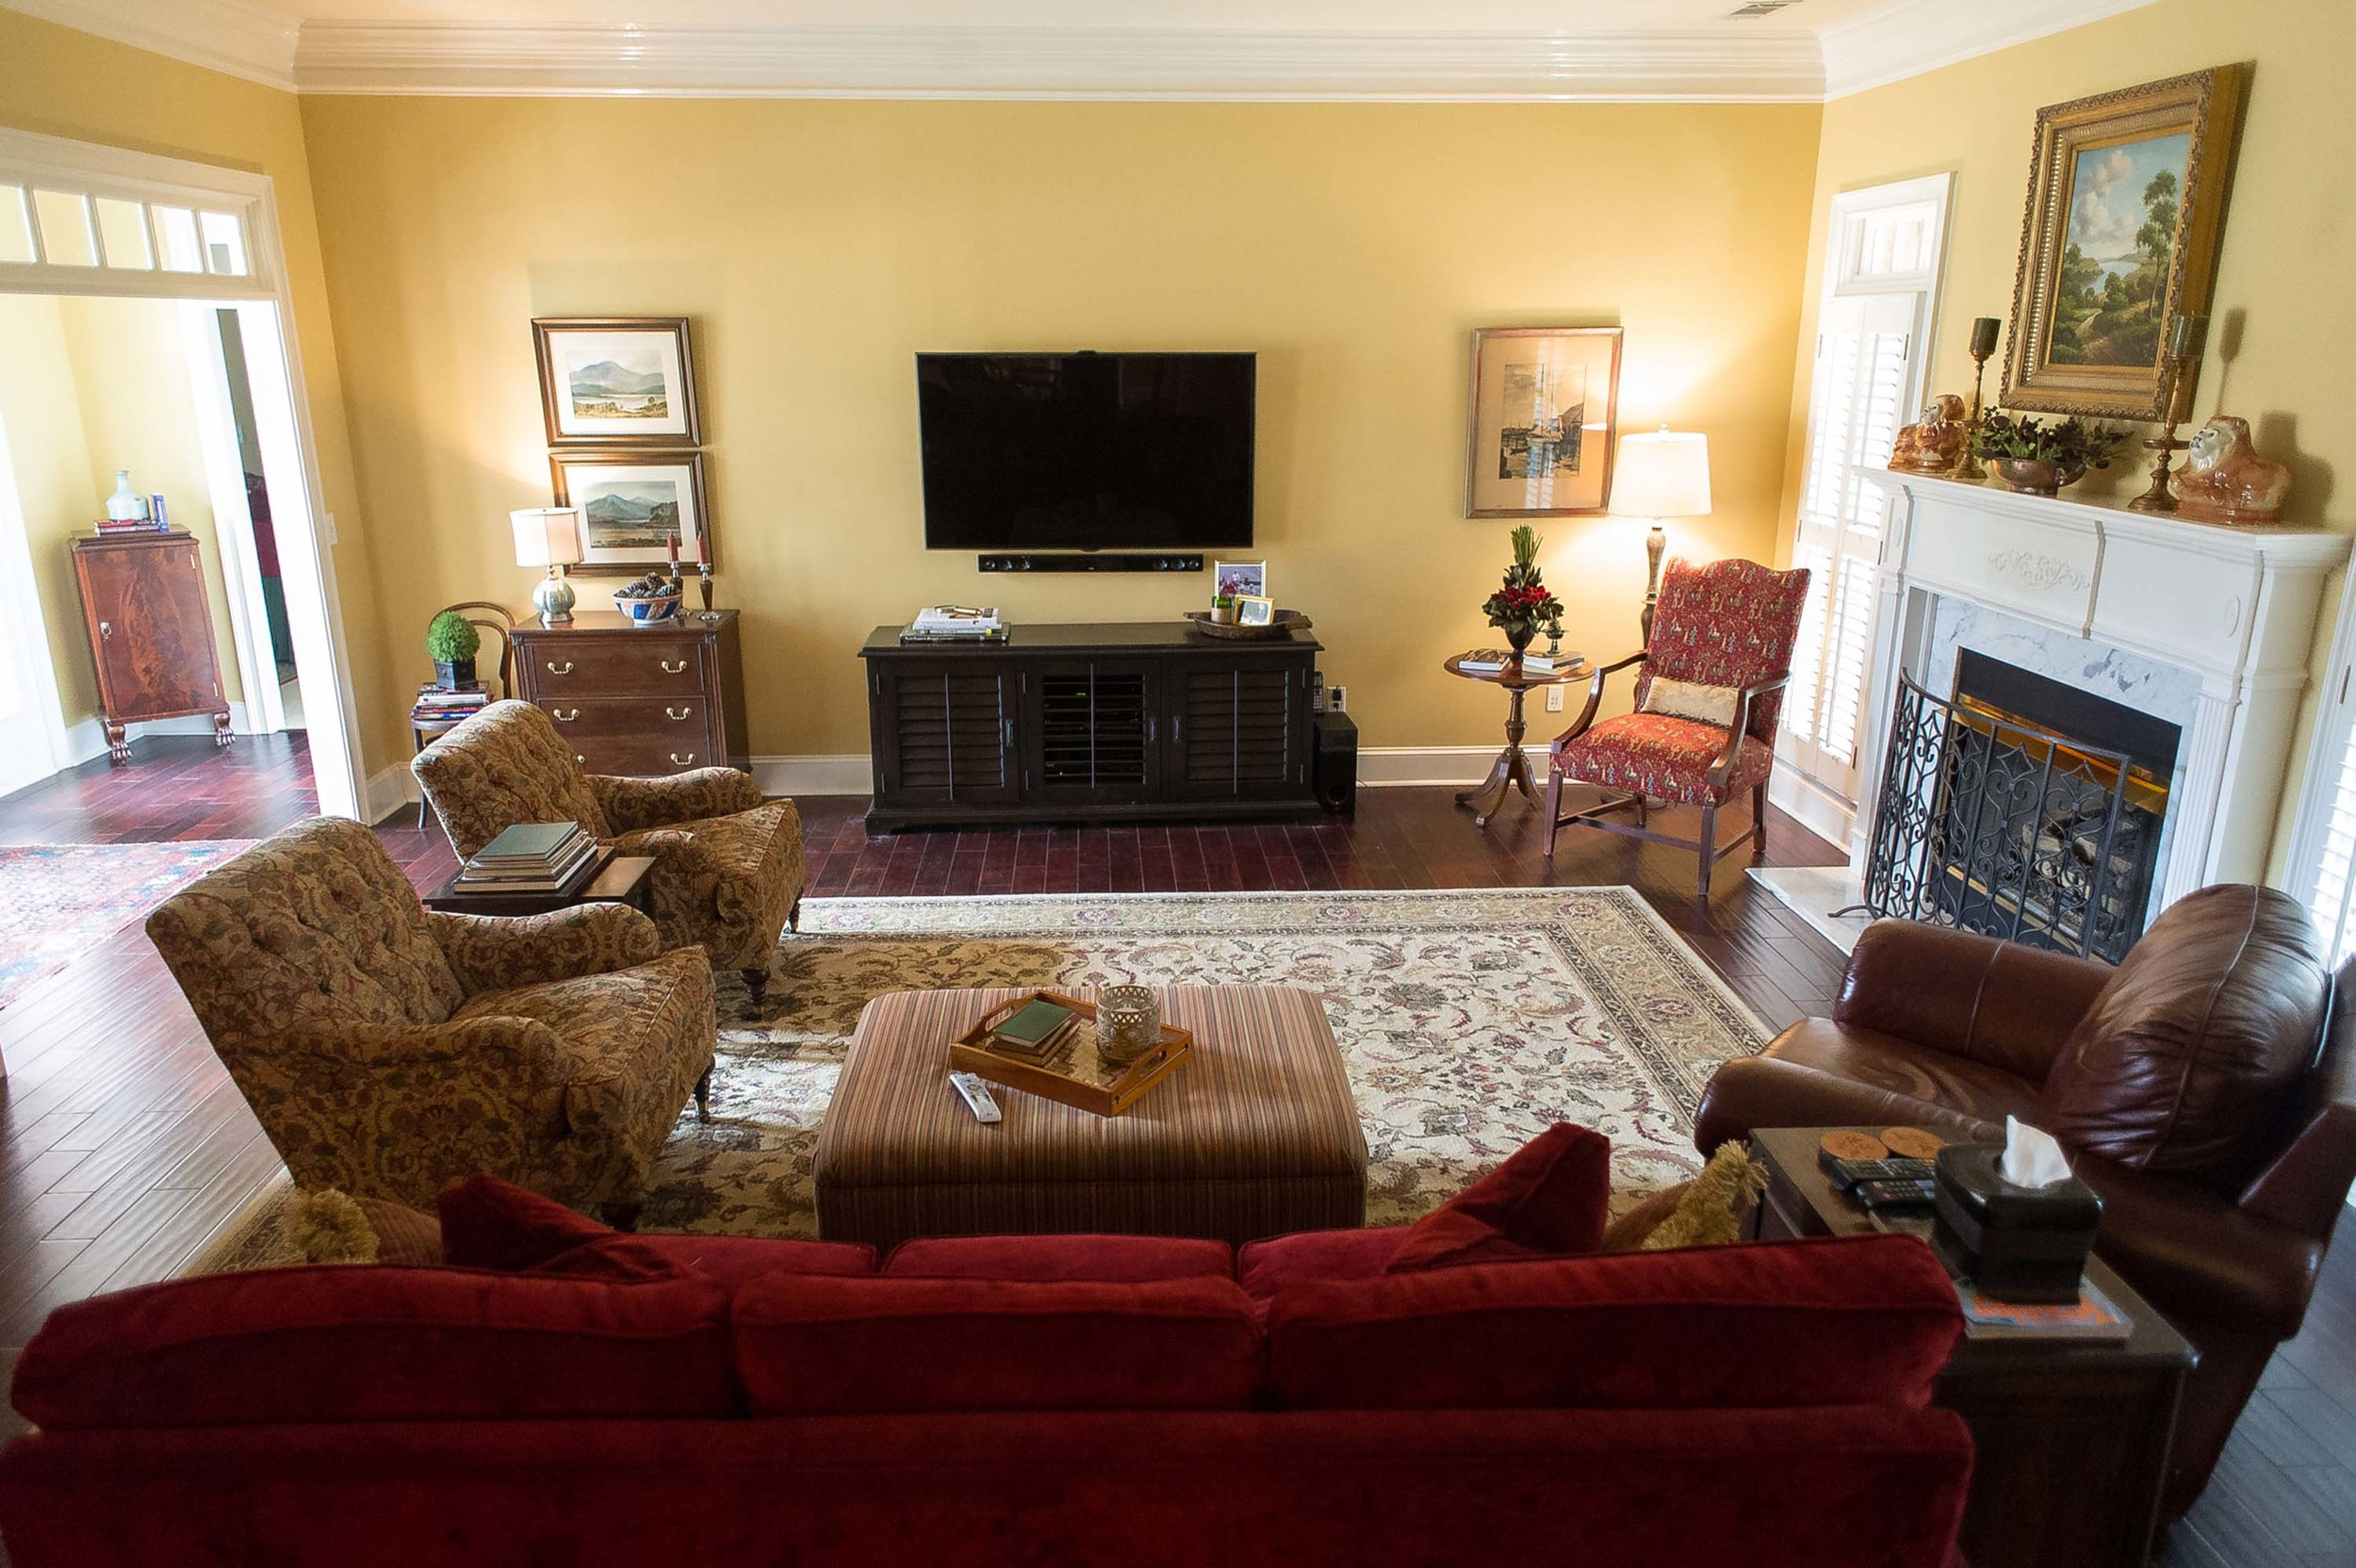 Large Living Room with Sofa, TV, Artwork & Large Area Rug